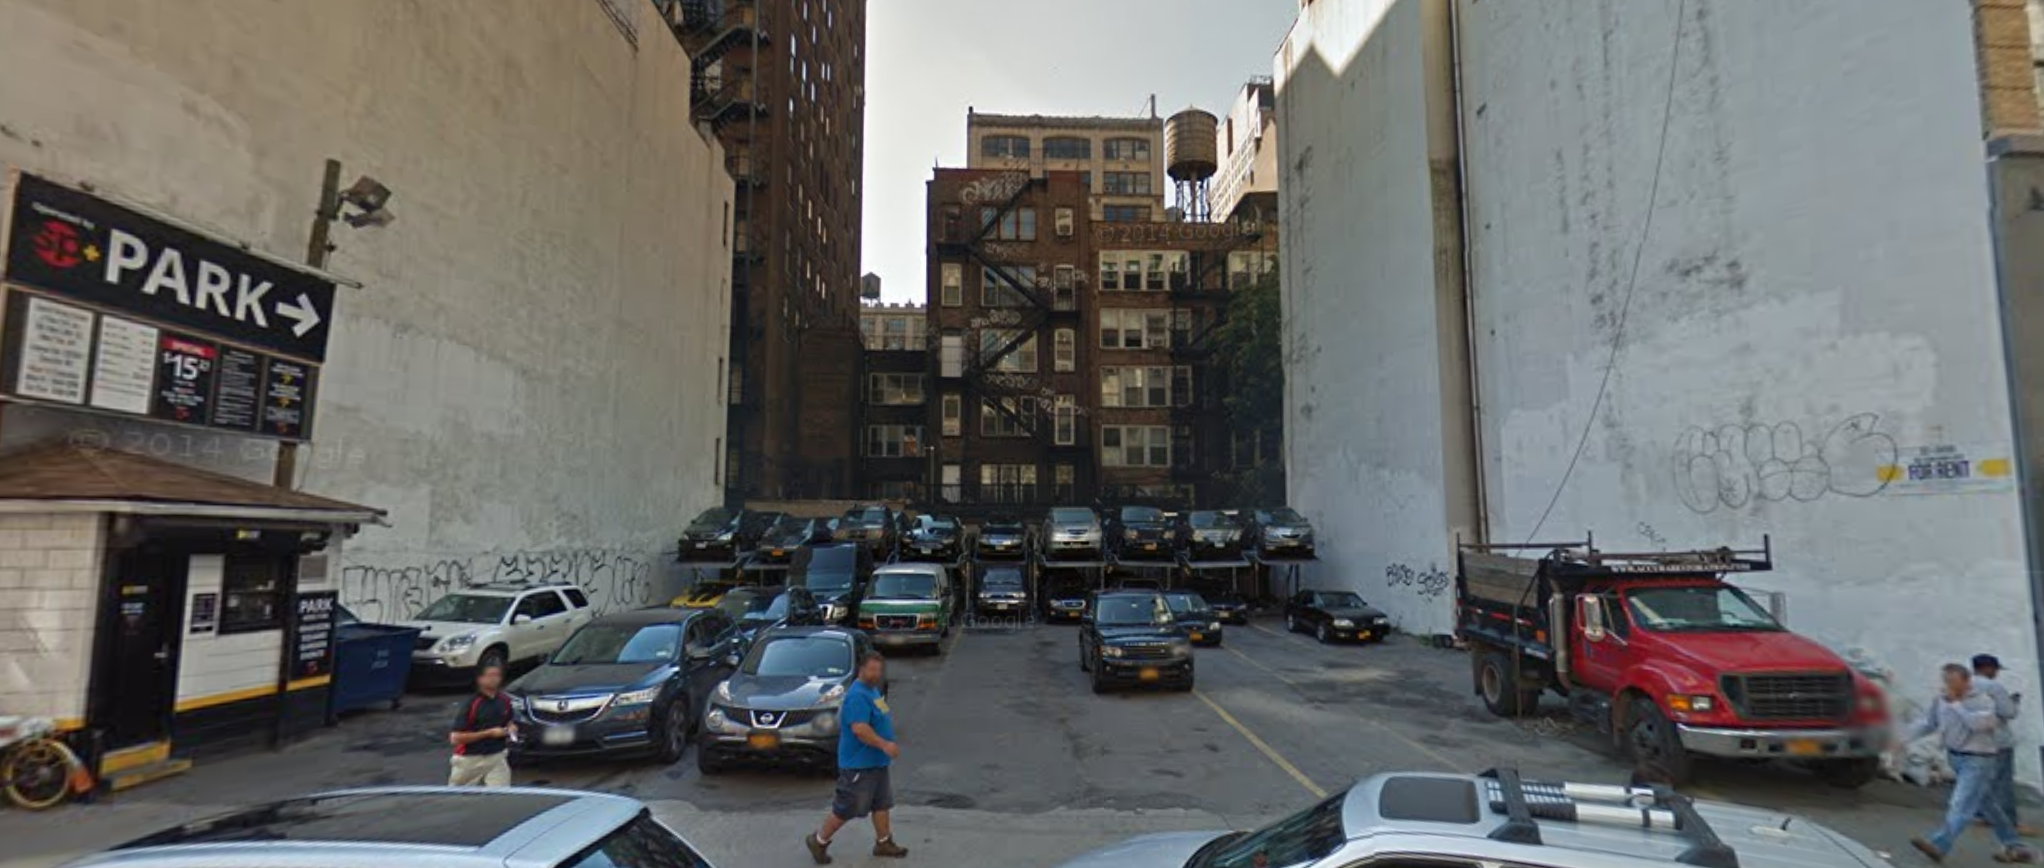 144 West 28th Street, image via Google Maps